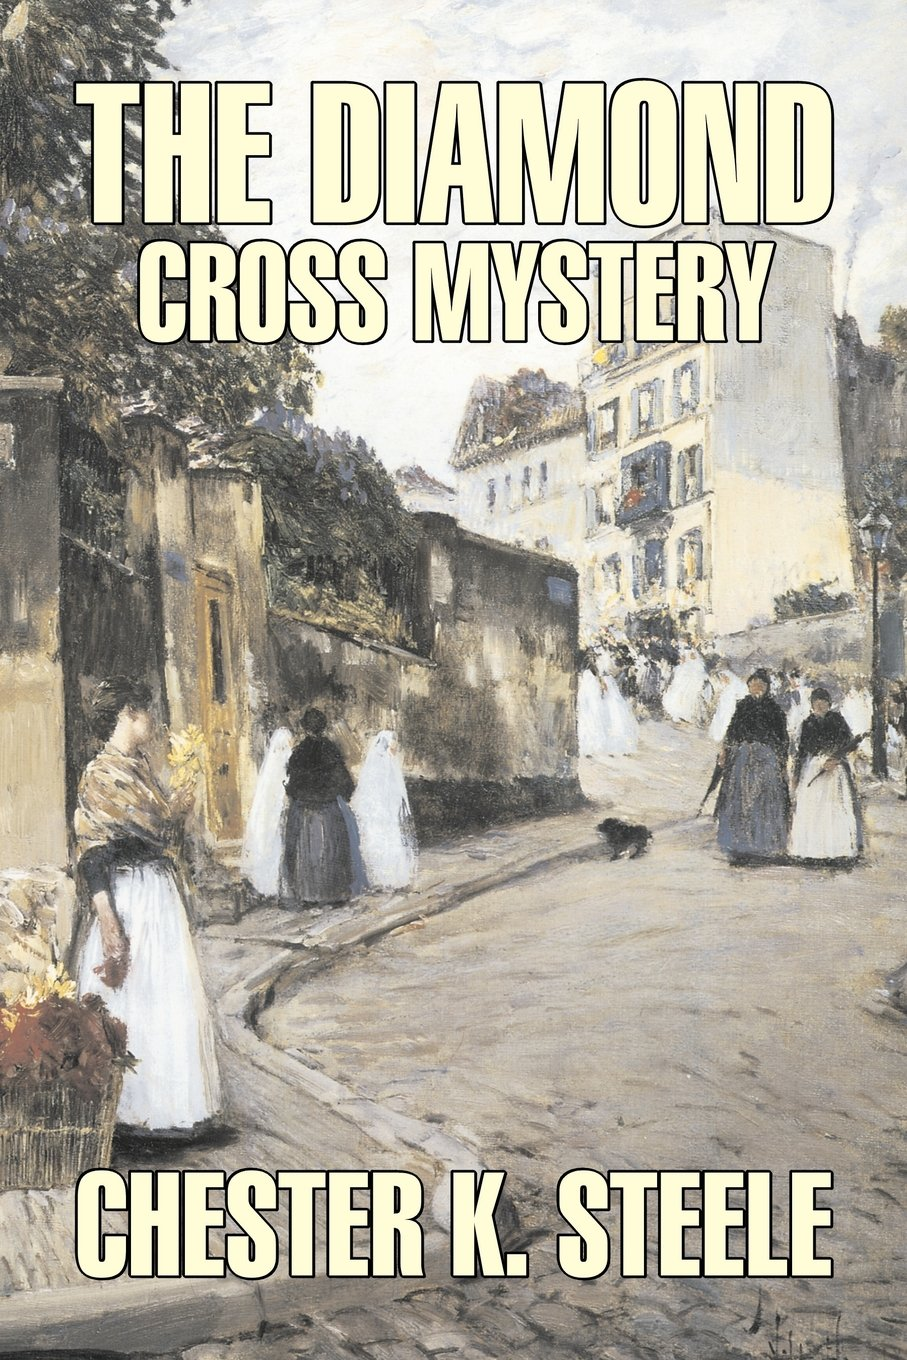 Download The Diamond Cross Mystery by Chester K. Steele, Fiction, Historical, Mystery & Detective, Action & Adventure pdf